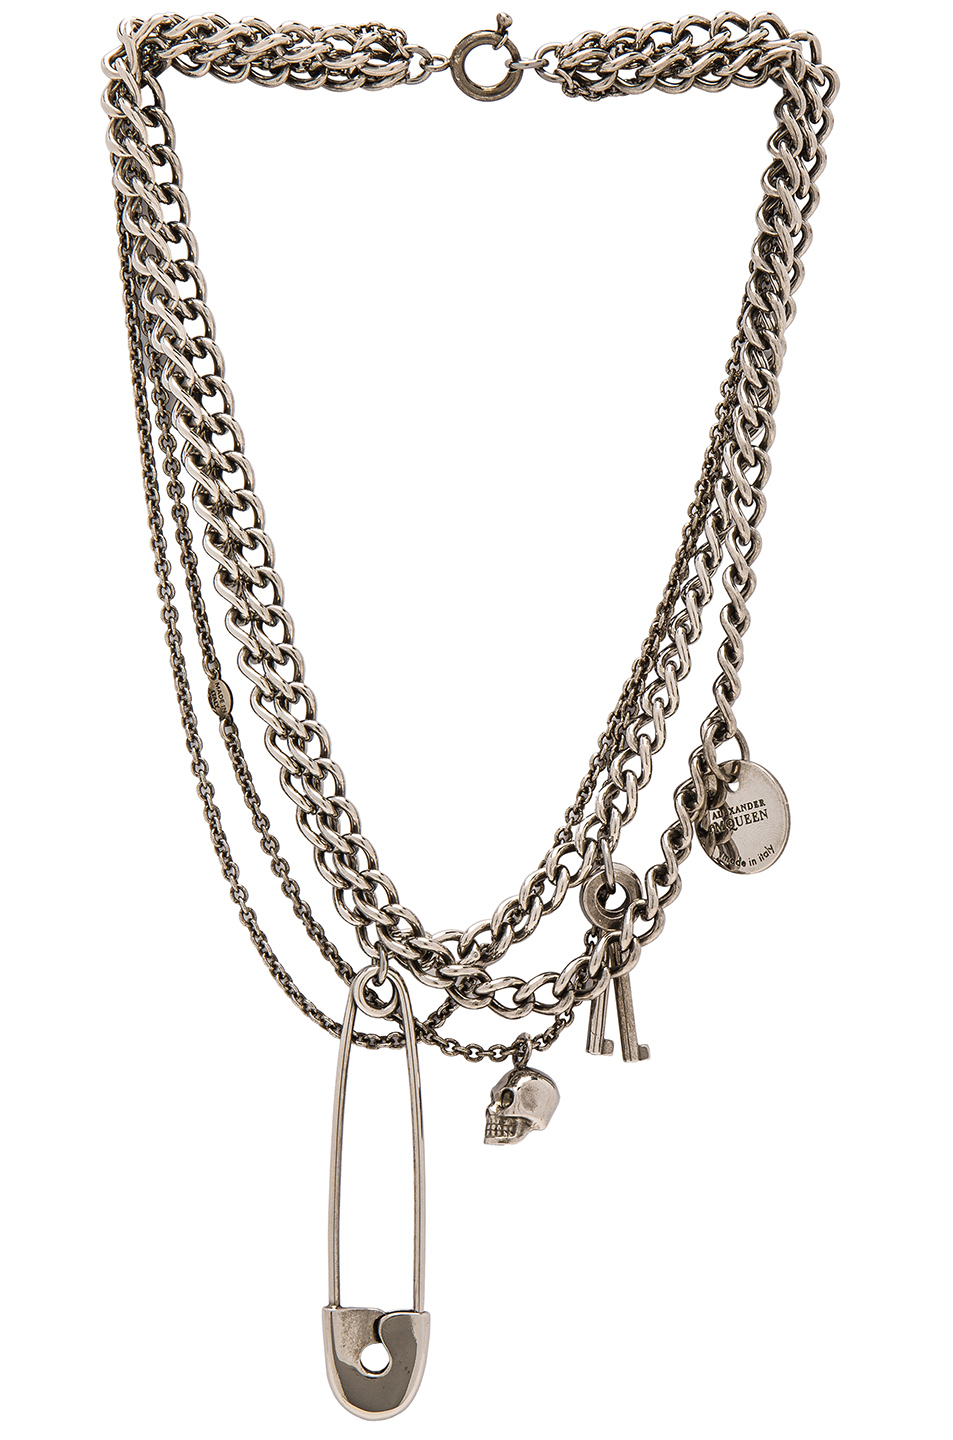 Alexander McQueen Necklace in Metallics